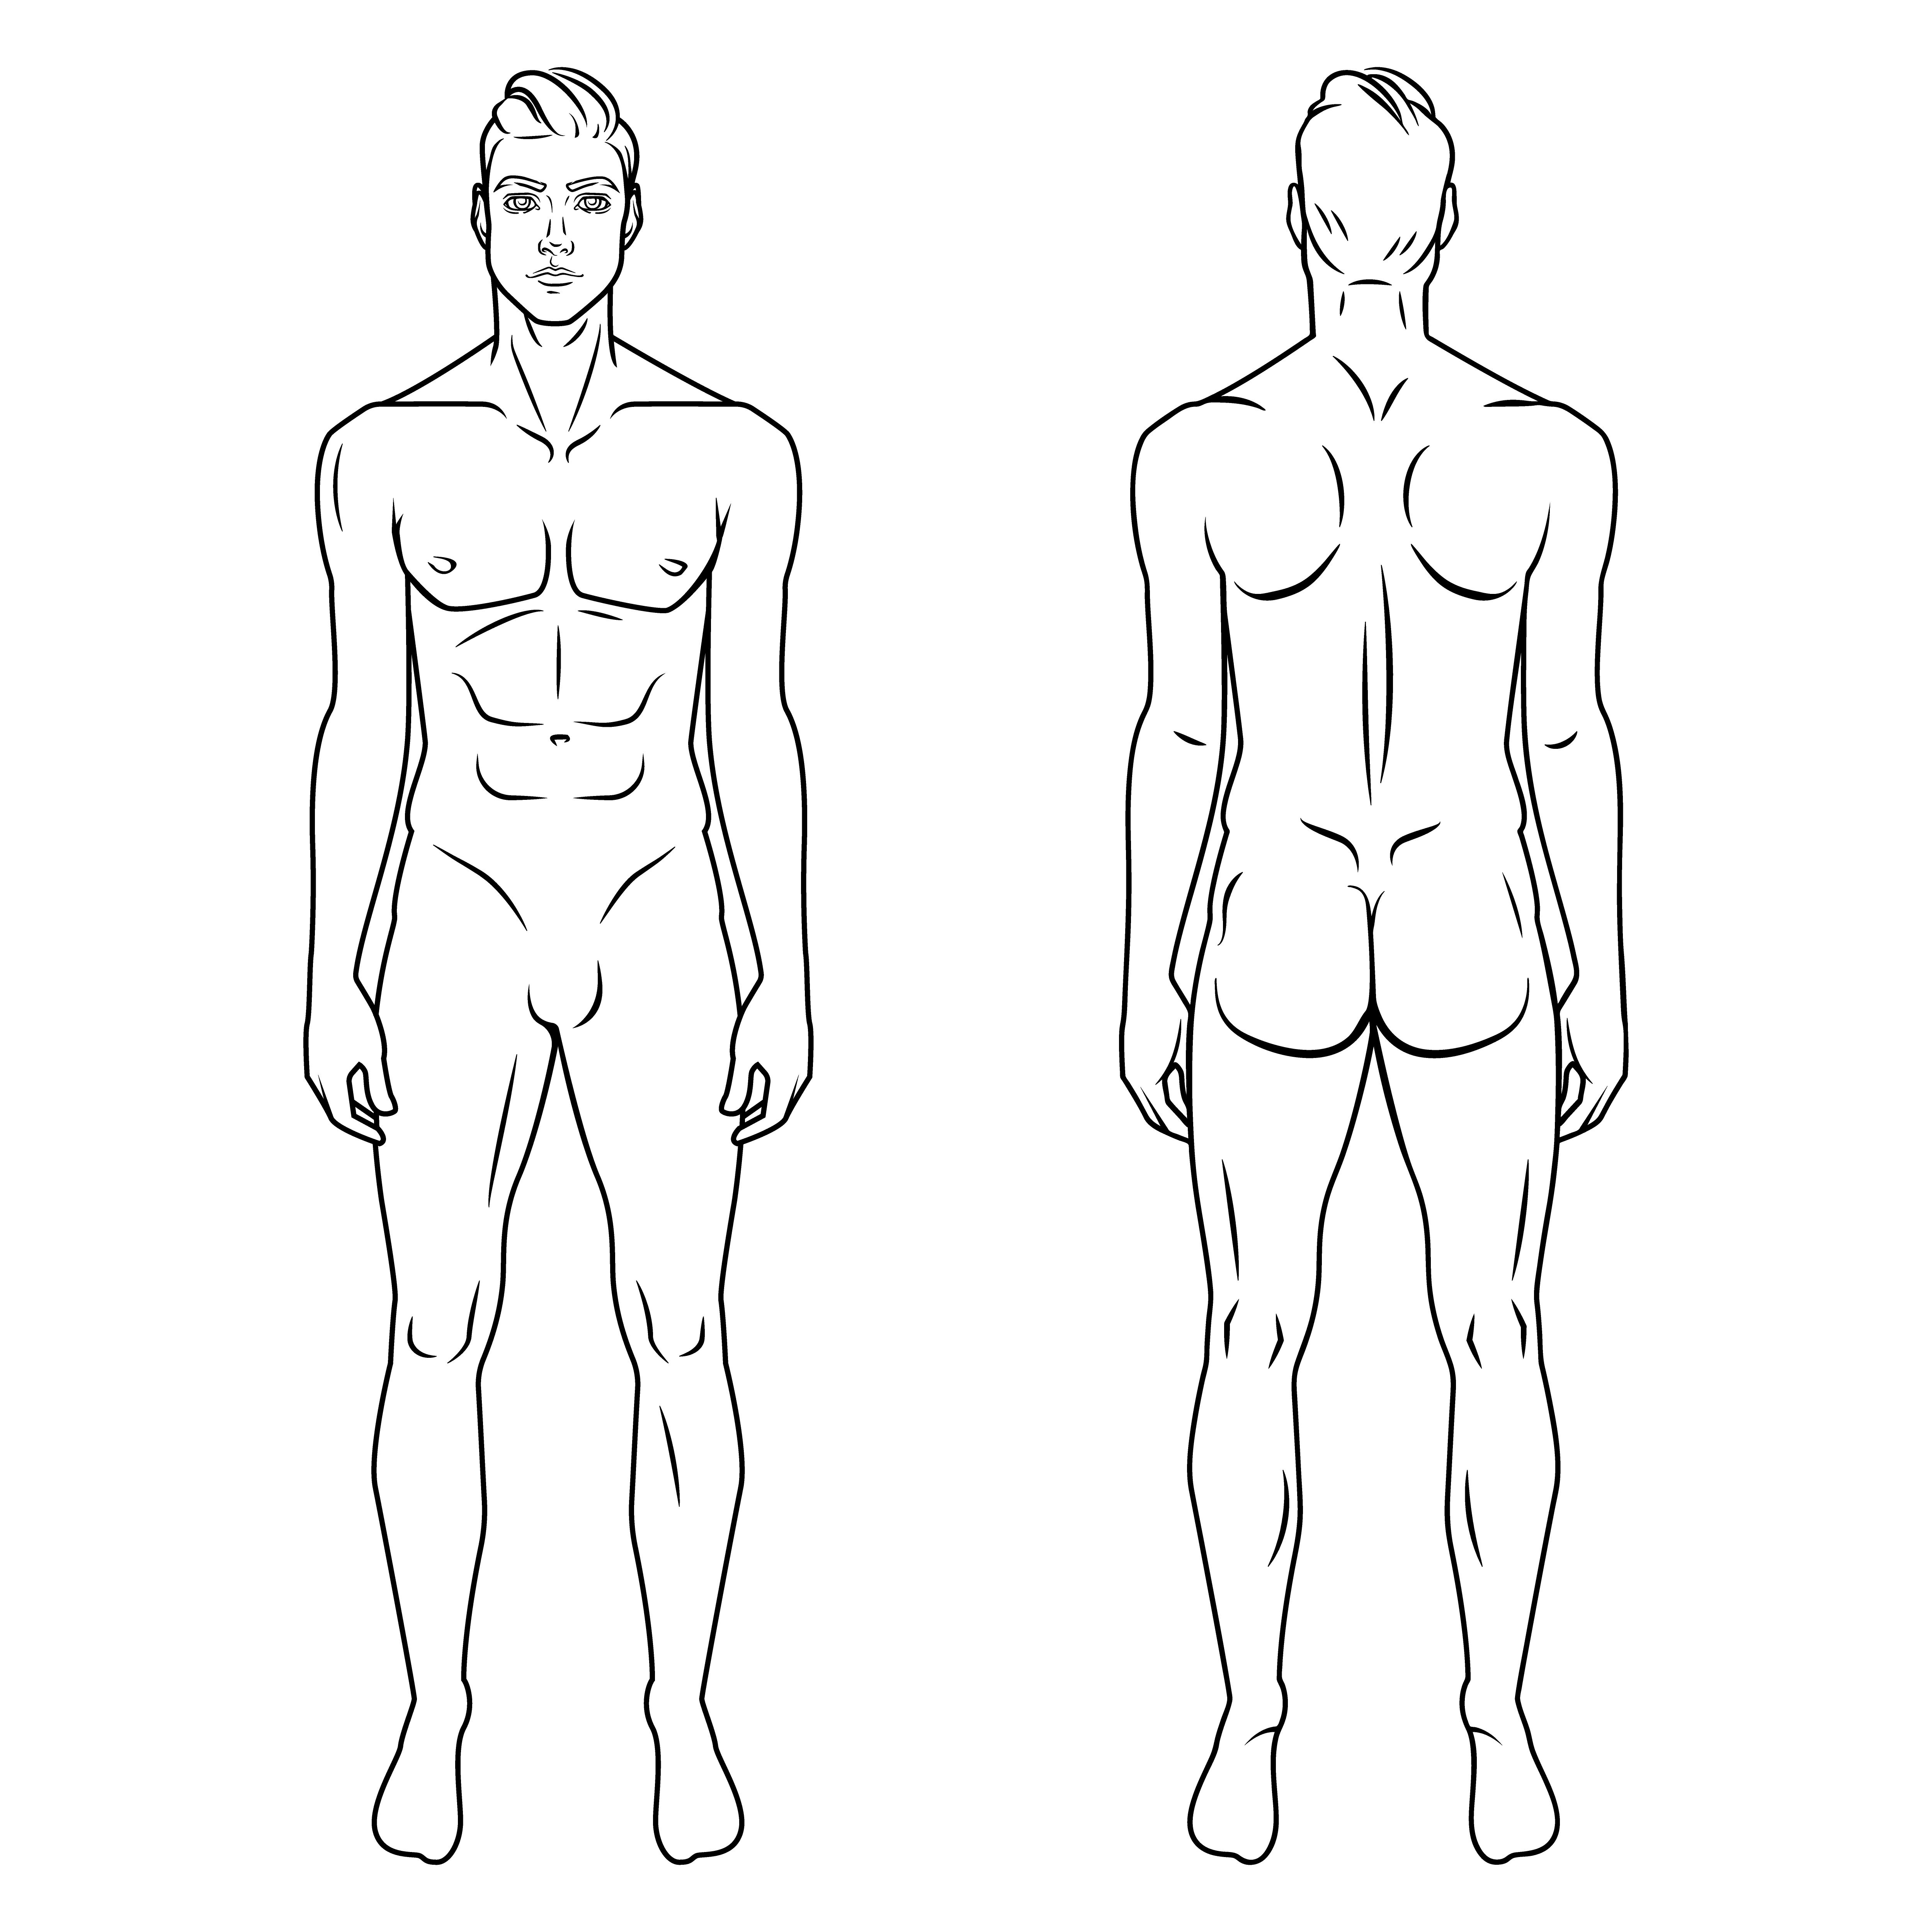 2 50 Great Purchase No Subscription Man Body Model Front And Back Human Poses Male Human Silhou Figure Drawing Fashion Illustration Male Figure Drawing Transparent transparent background woman silhouette png. pinterest